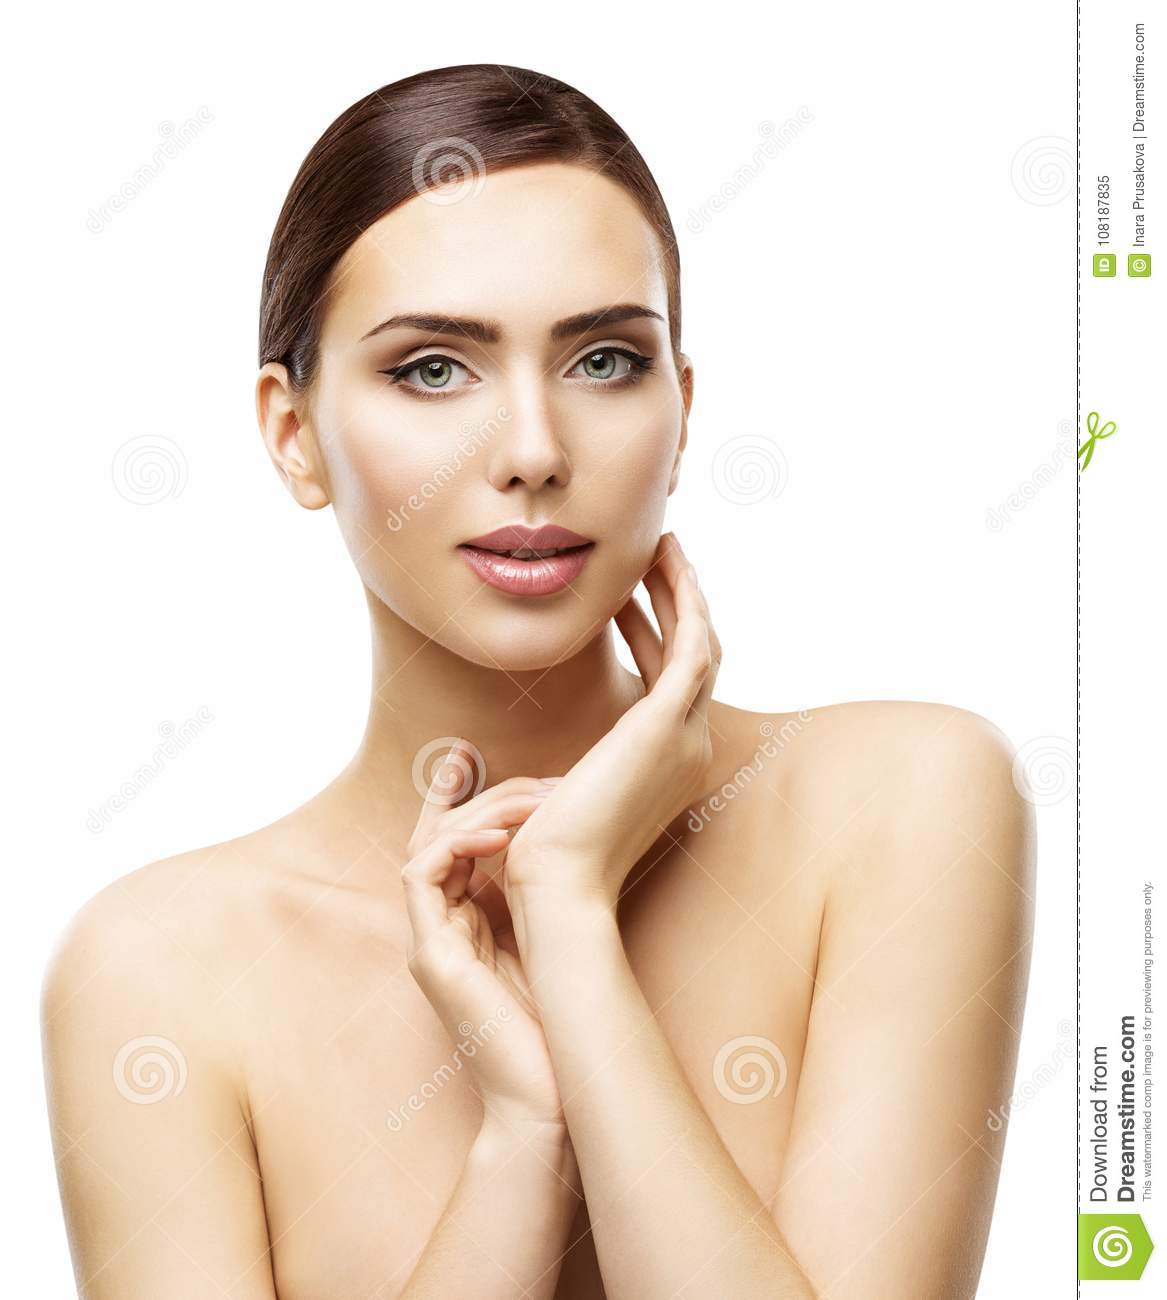 Skin Care Model: Face Skin Care And Natural Beauty Make Up, Woman Touch